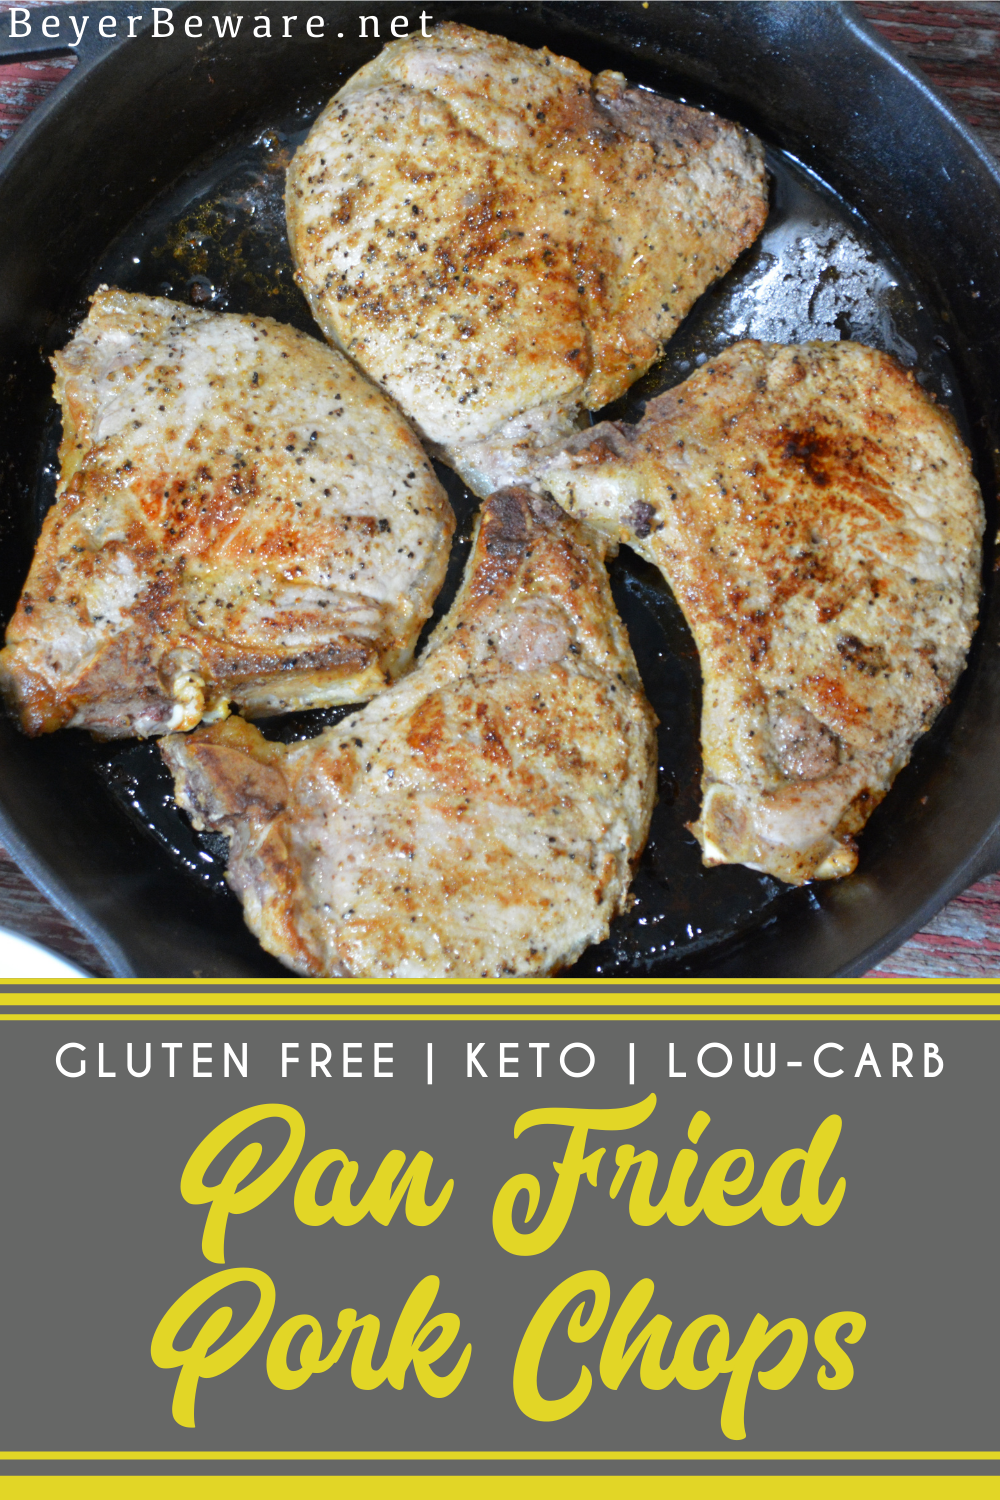 Pan-Fried pork chops recipe has no flour, no marinading, no waiting, just juicy, flavorful pork chops cooked in a buttered cast iron skillet in under 30 minutes.